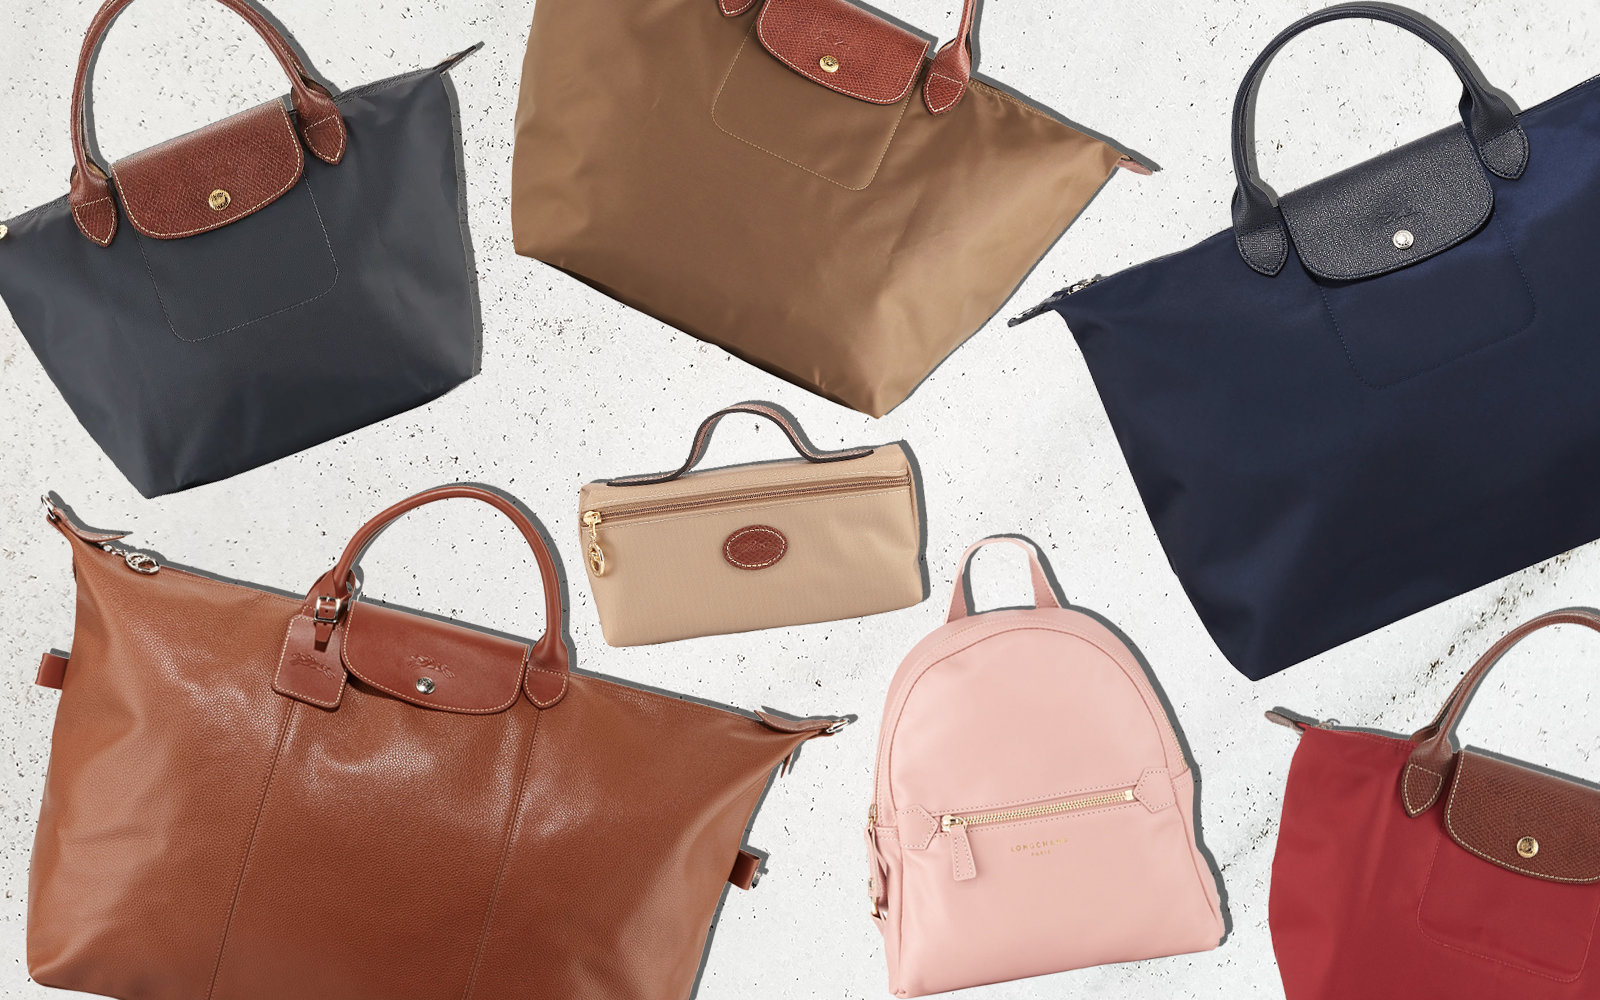 Longchamp s Best Travel Bags Are Majorly on Sale Right Now  9004ad582fb82